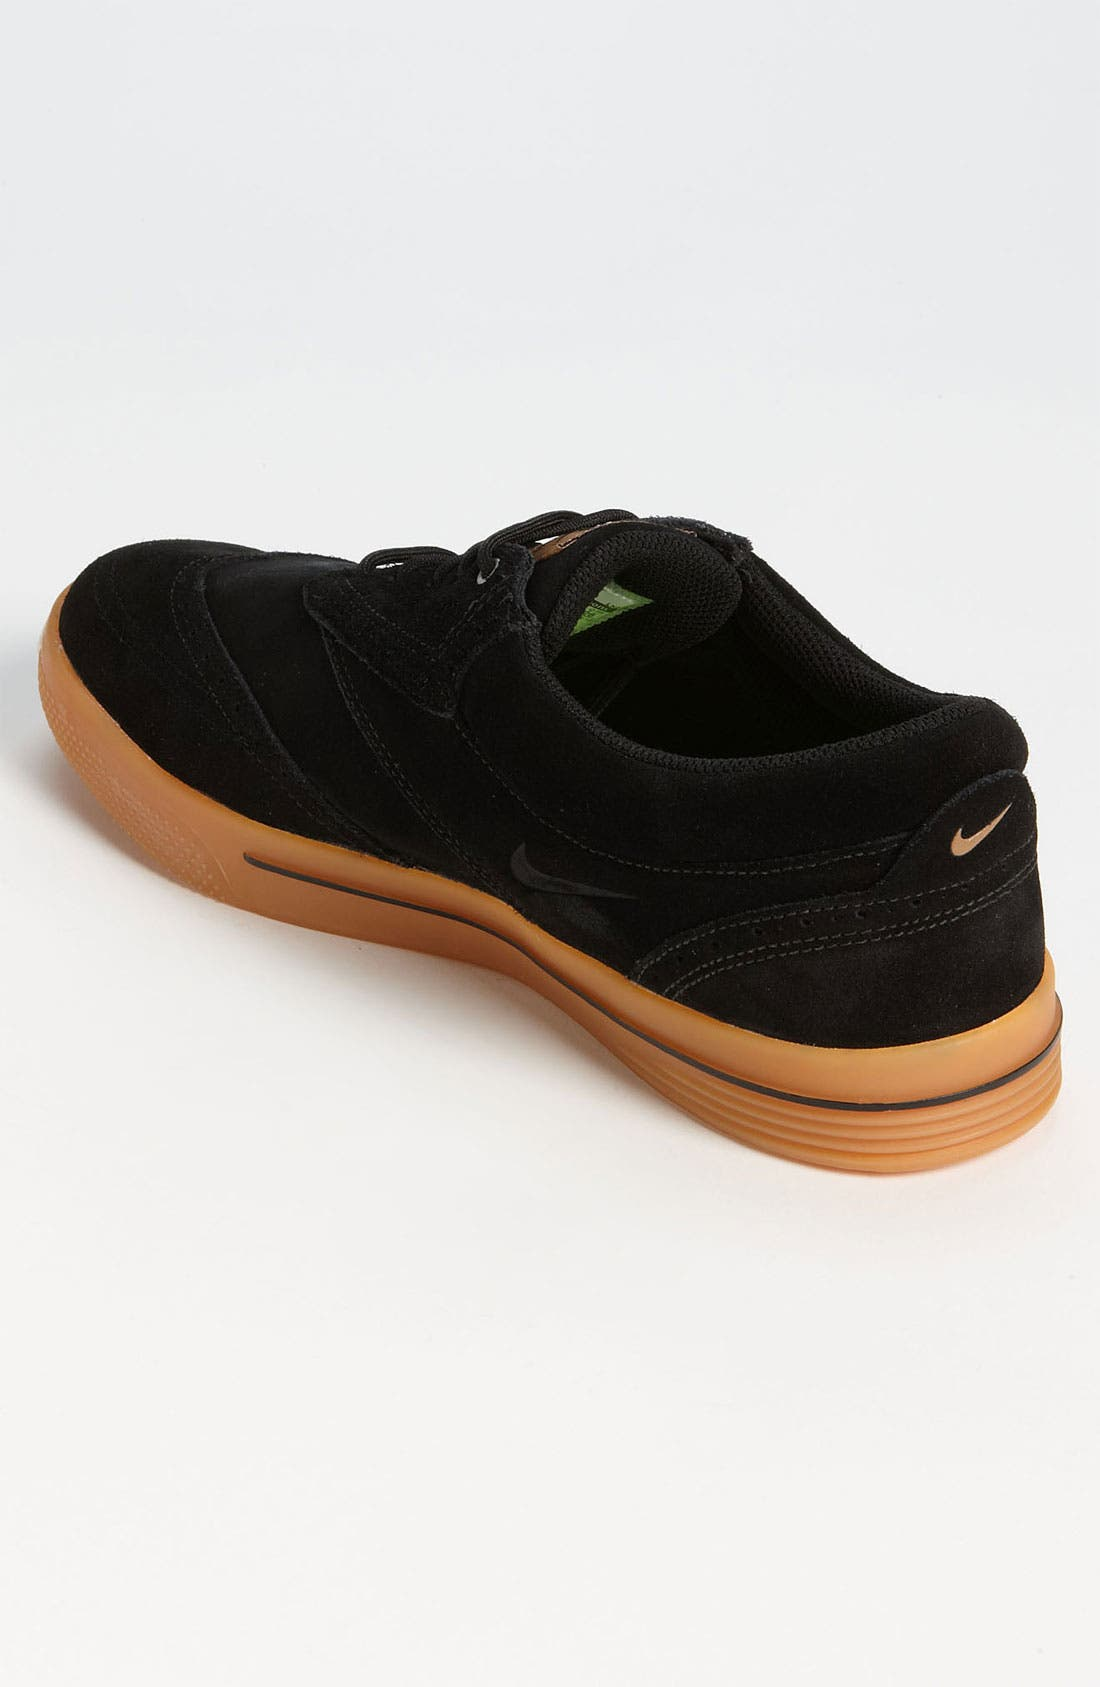 Alternate Image 2  - Nike 'Lunar Swingtip' Suede Golf Shoe (Men)